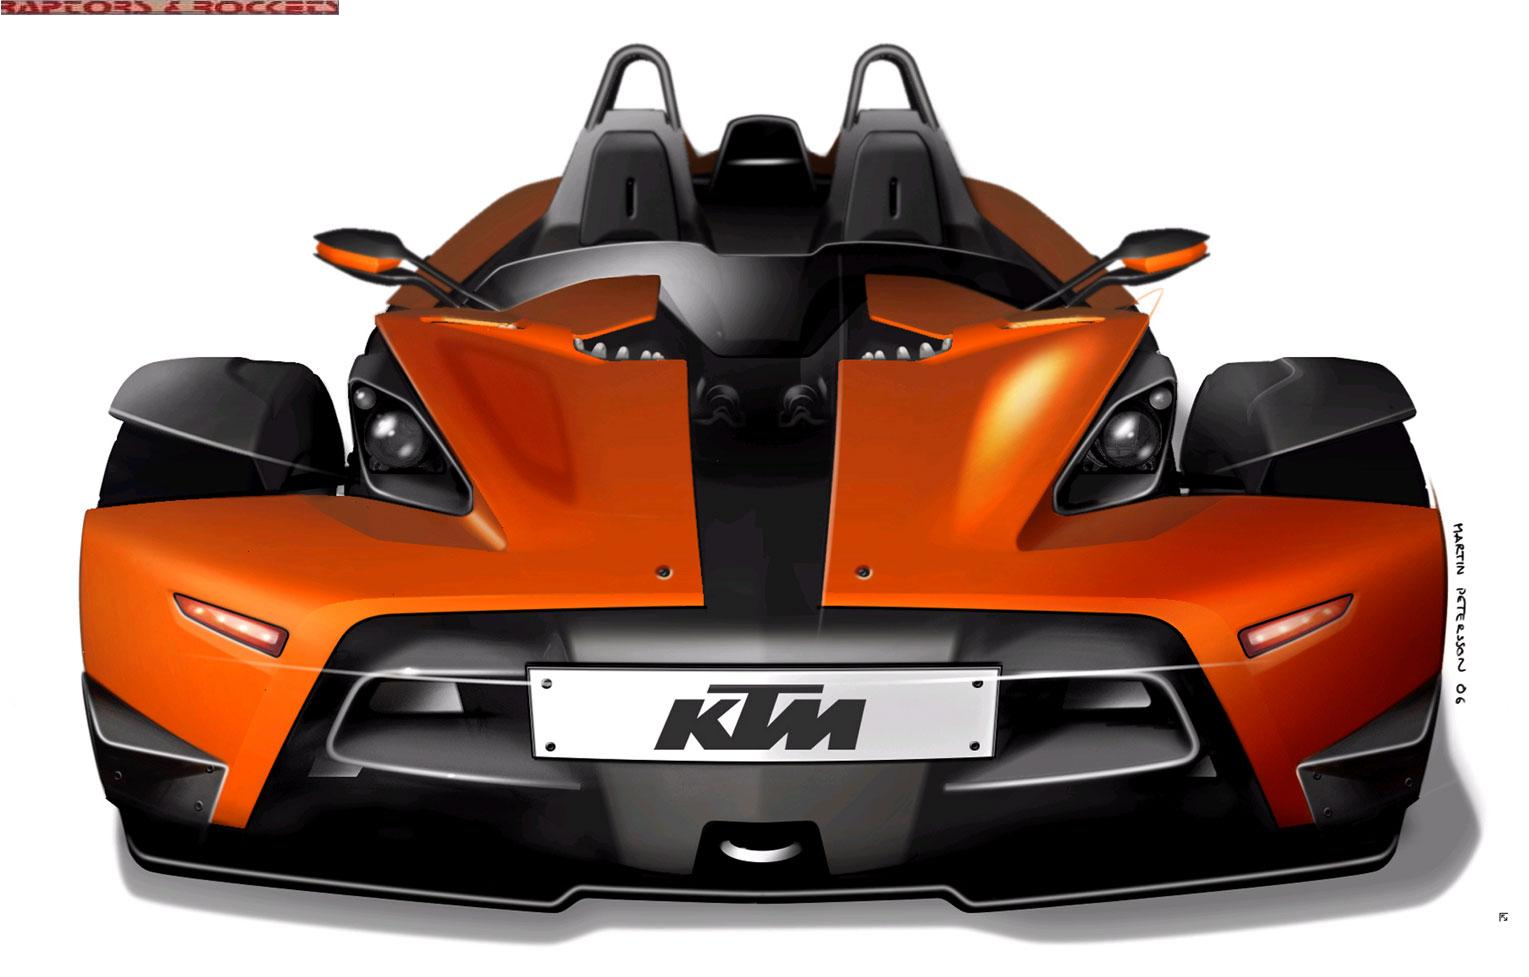 2011 ktm x bow r race car popular automotive. Black Bedroom Furniture Sets. Home Design Ideas